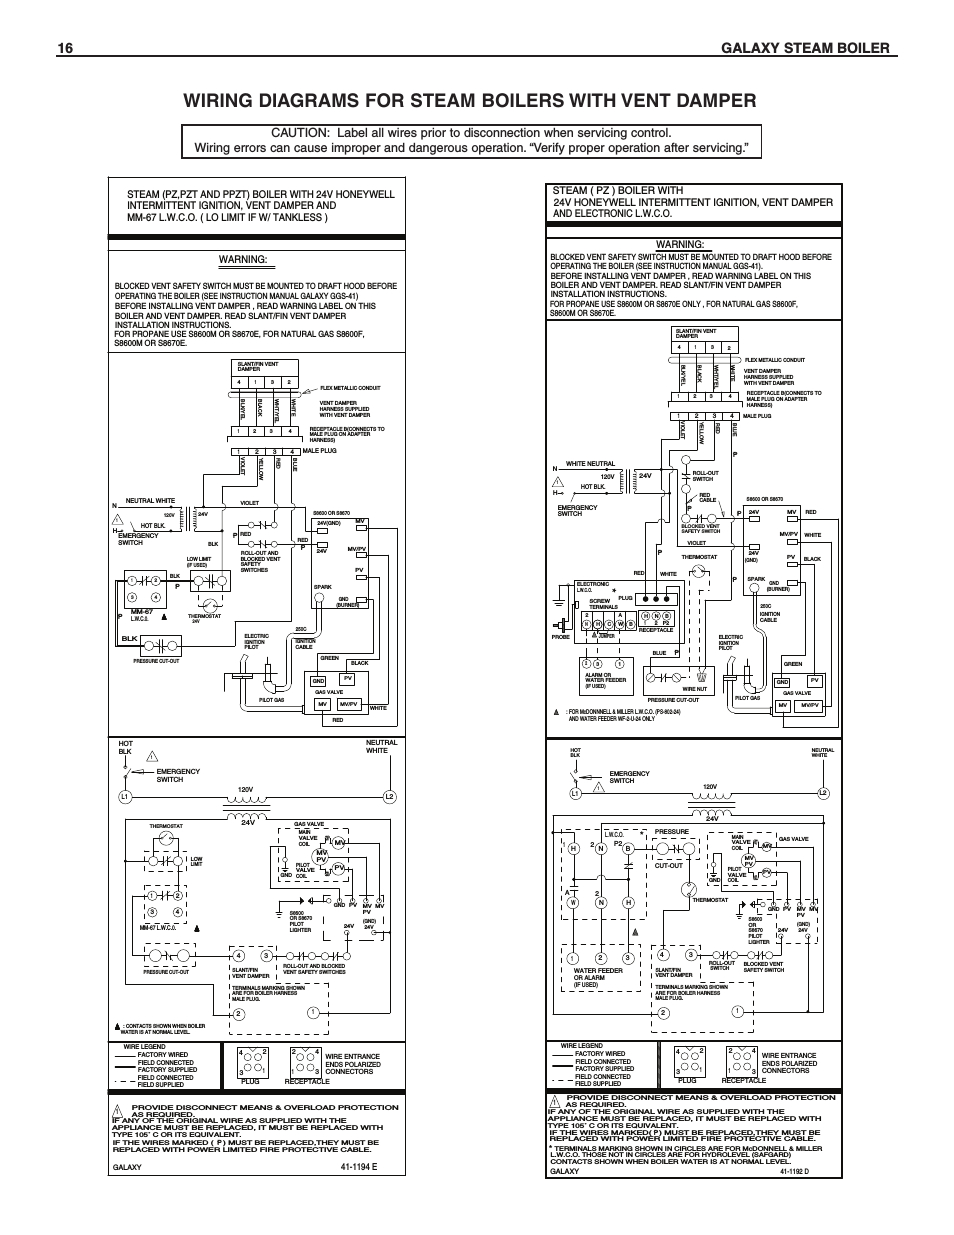 safgard low water cut off wiring diagram Download-Residential Steam Boiler Piping Diagram Unique Slant Fin Boiler Wiring Diagram Wiring Diagrams Schematics 13-j